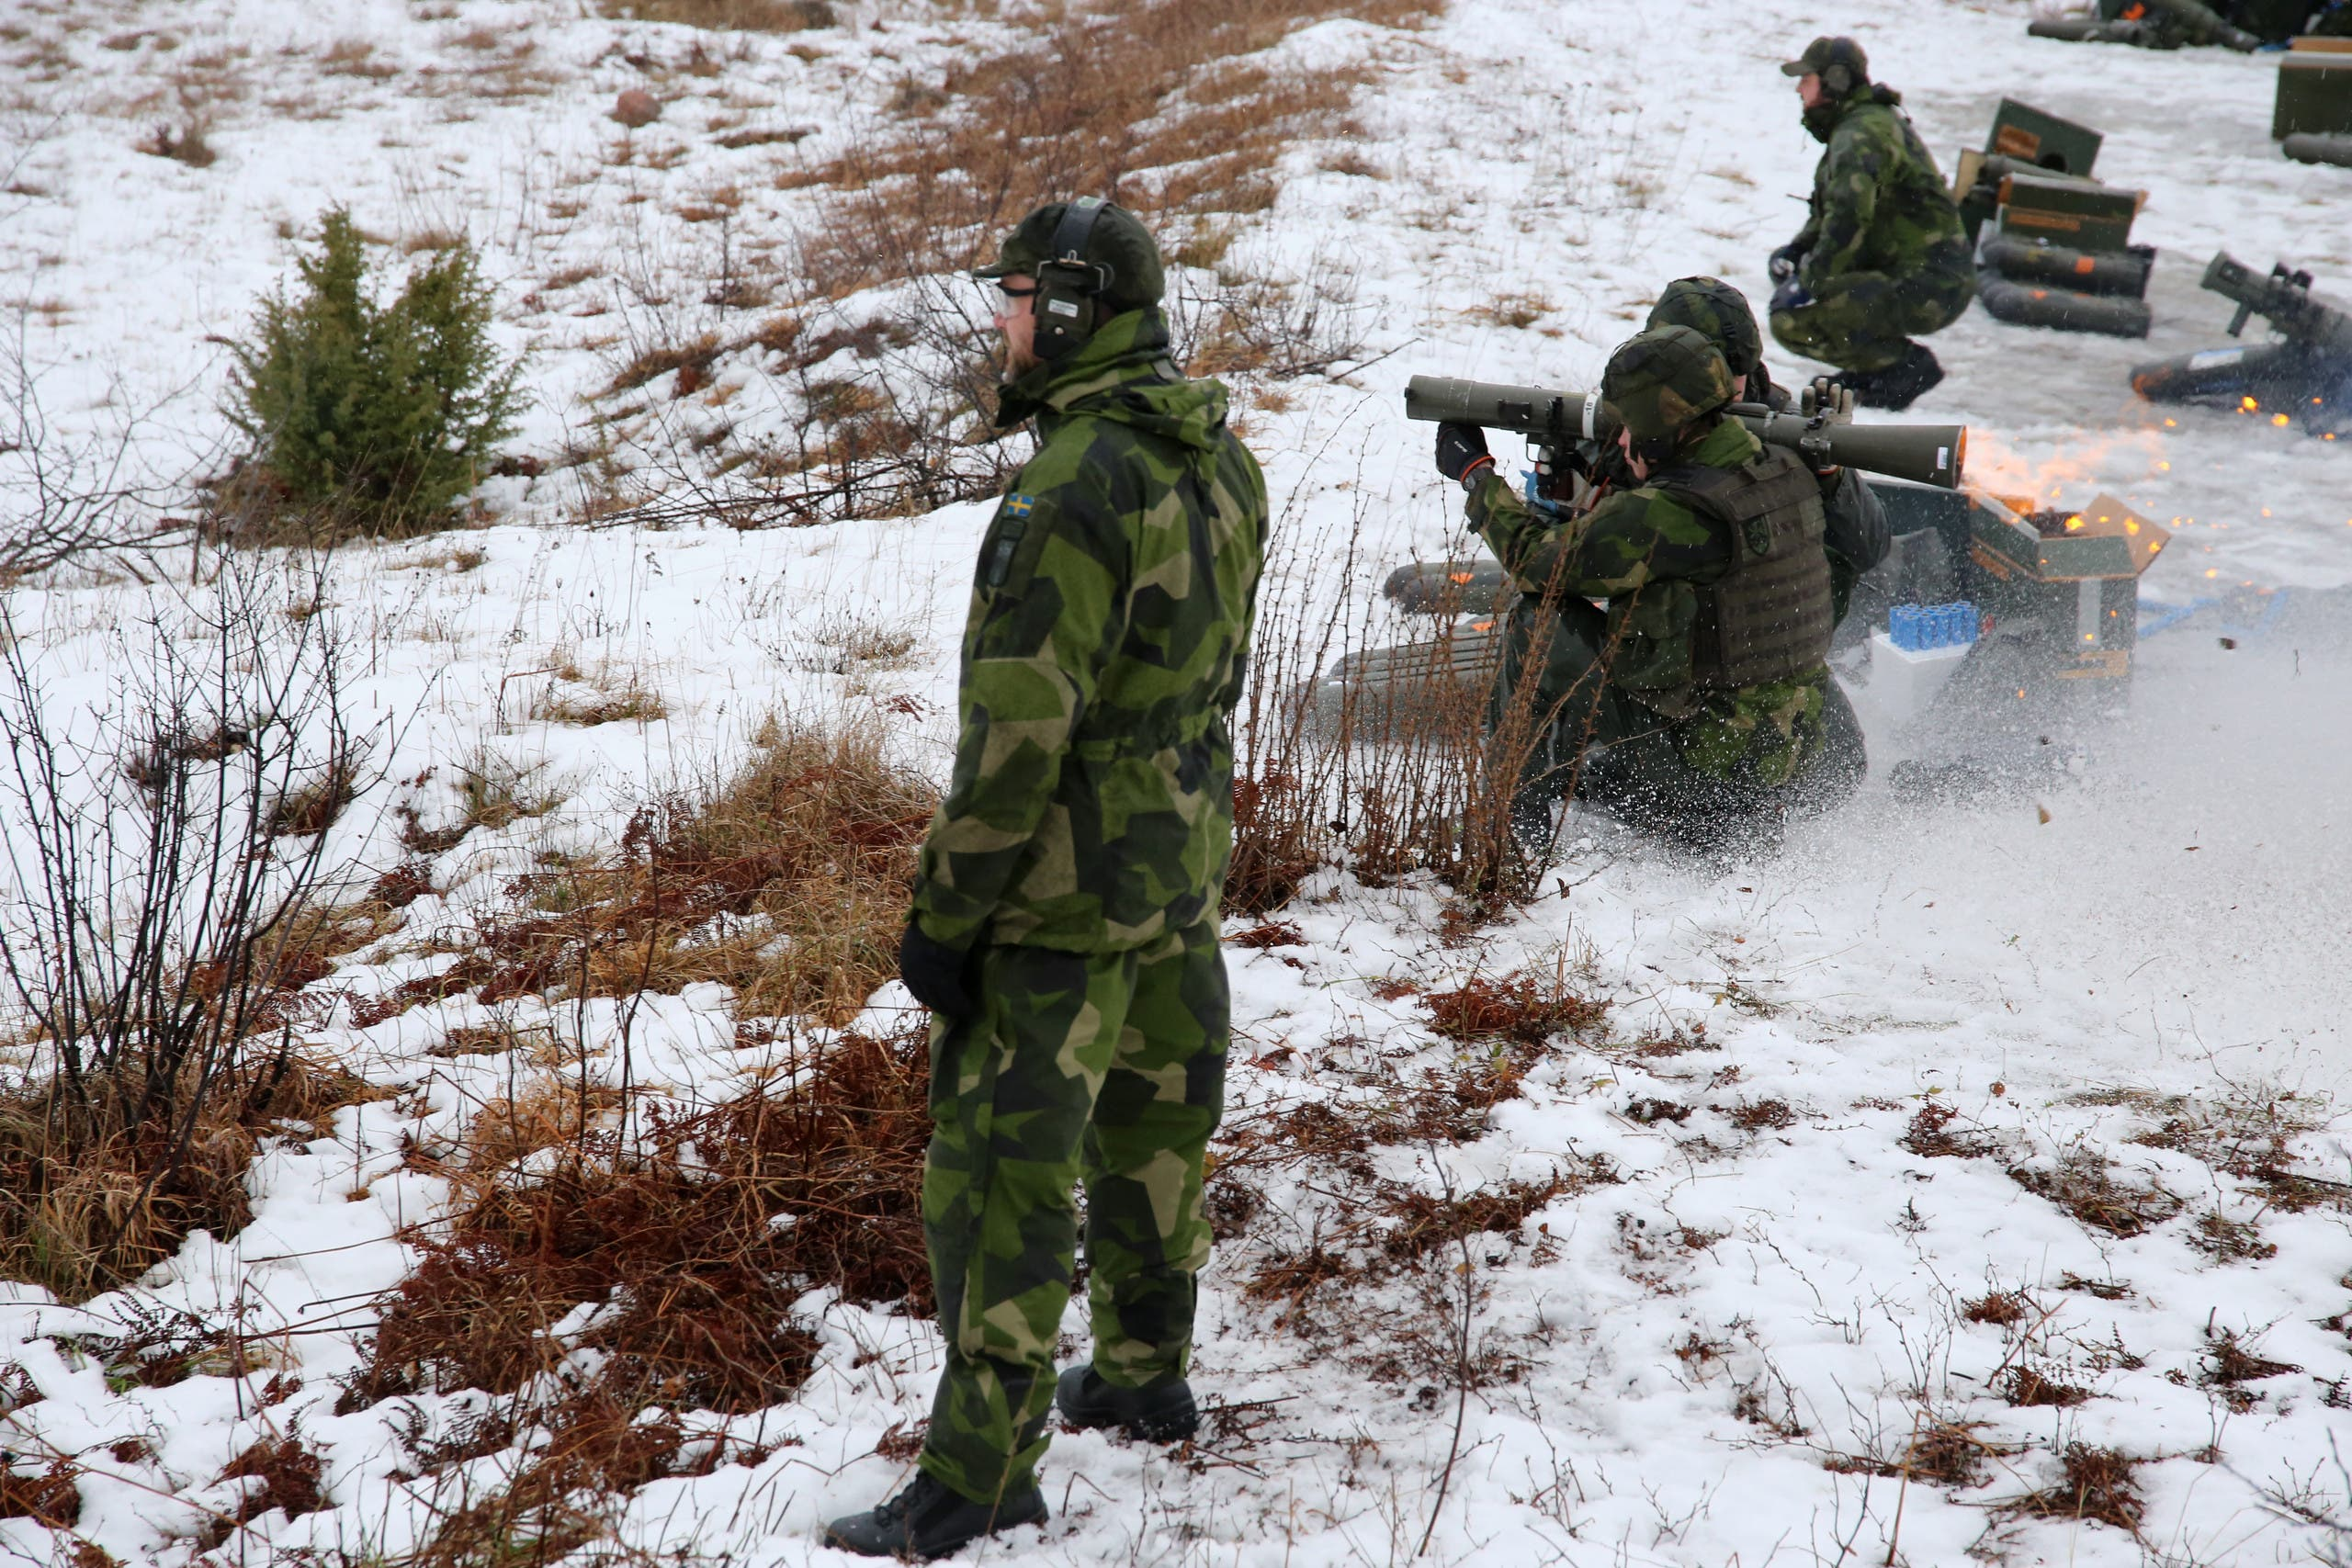 Members of the Gotland regiment fire an anti-tank weapon on a range during a live fire exercise on the Baltic island on February 5, 2019. (AFP)